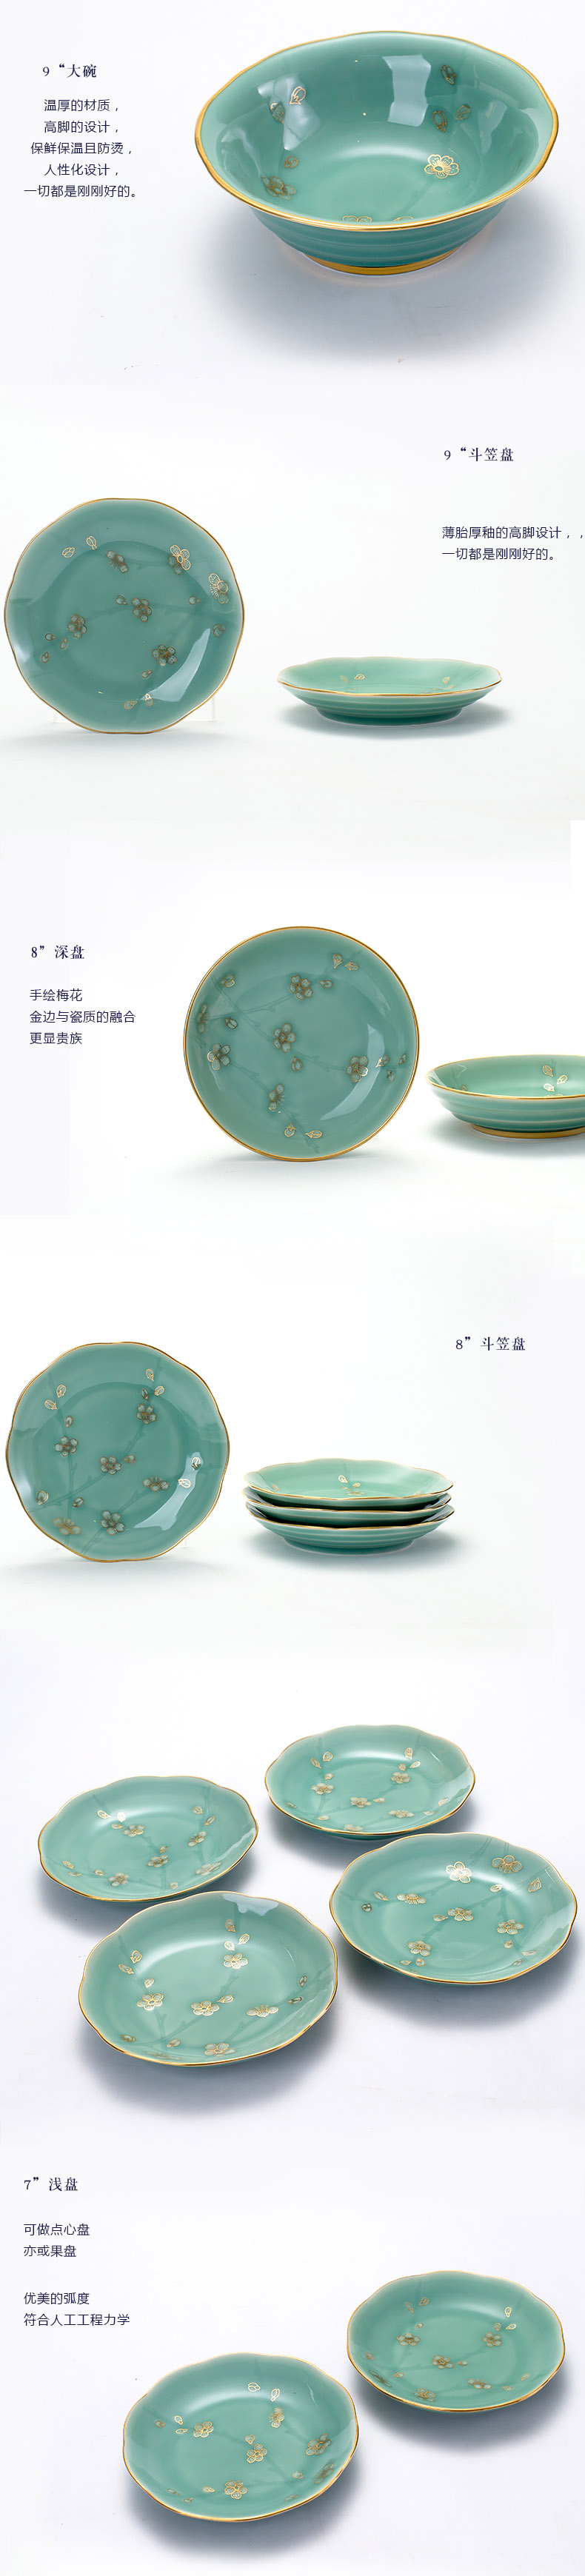 Longquan celadon dishes bulk, DIY 】 【 north European style up phnom penh high - grade hand - made use of jingdezhen ceramics tableware